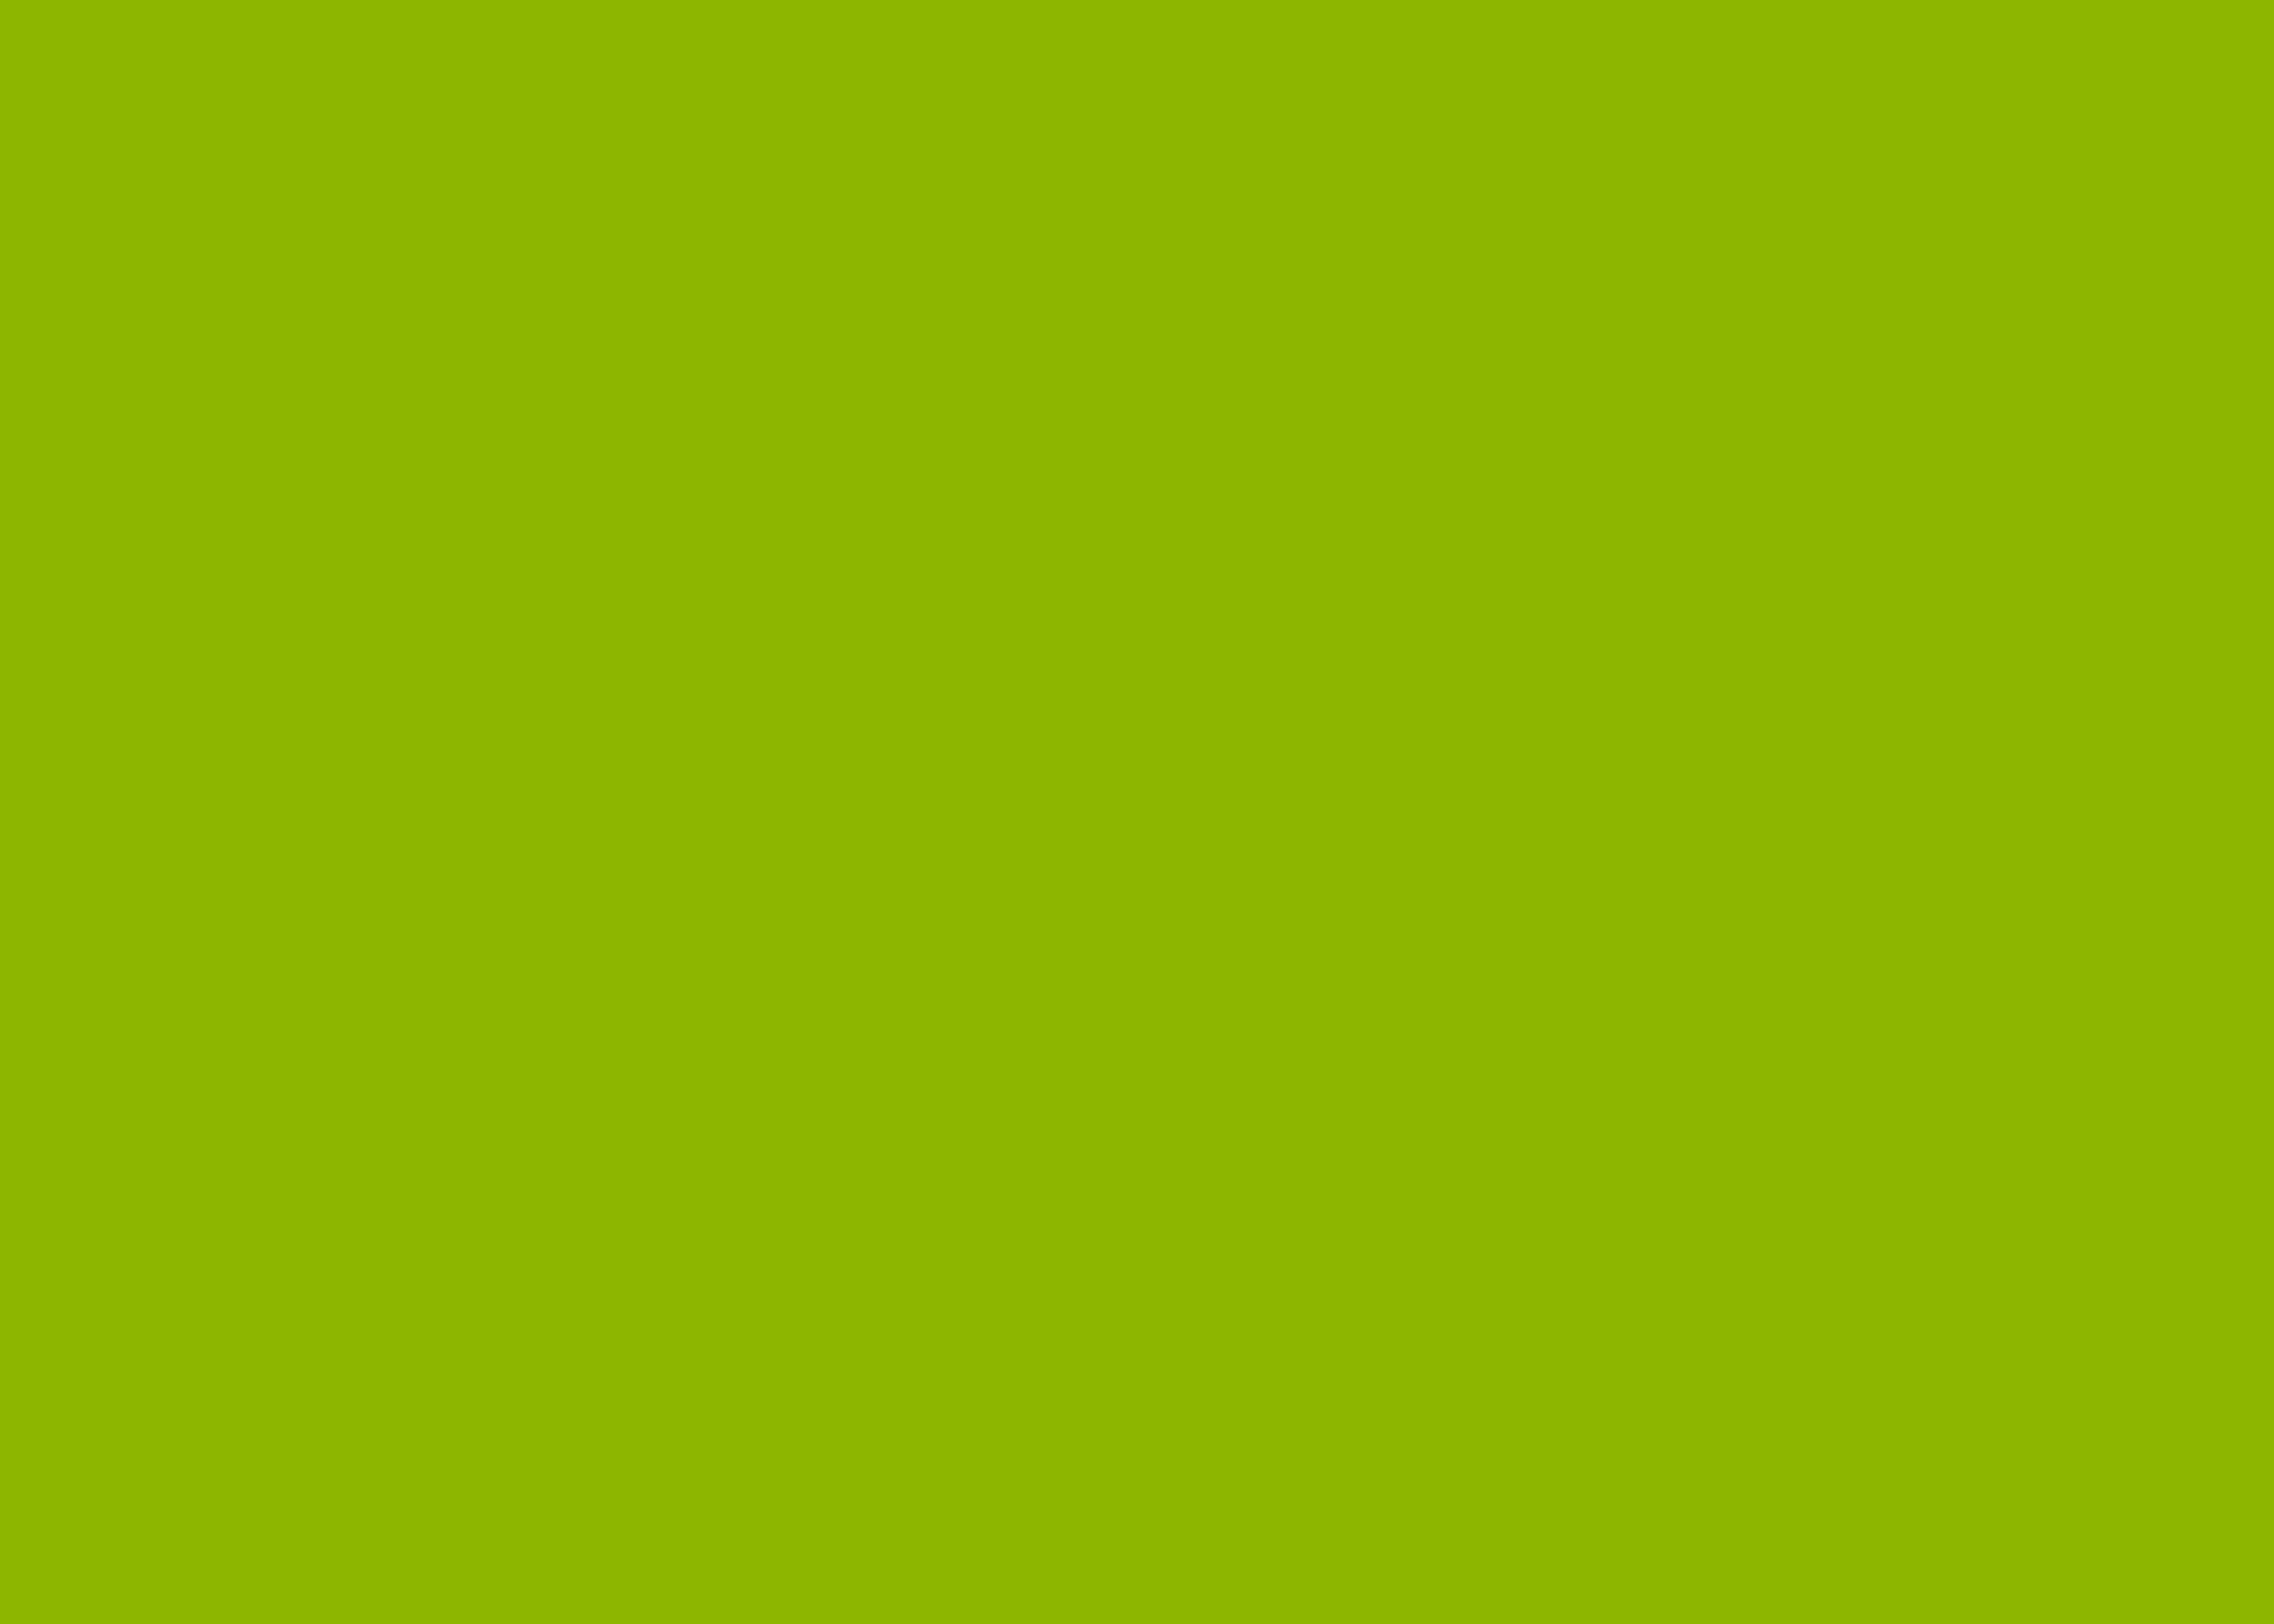 Apple Green (web) is a Yellow-Green color. The color apple green